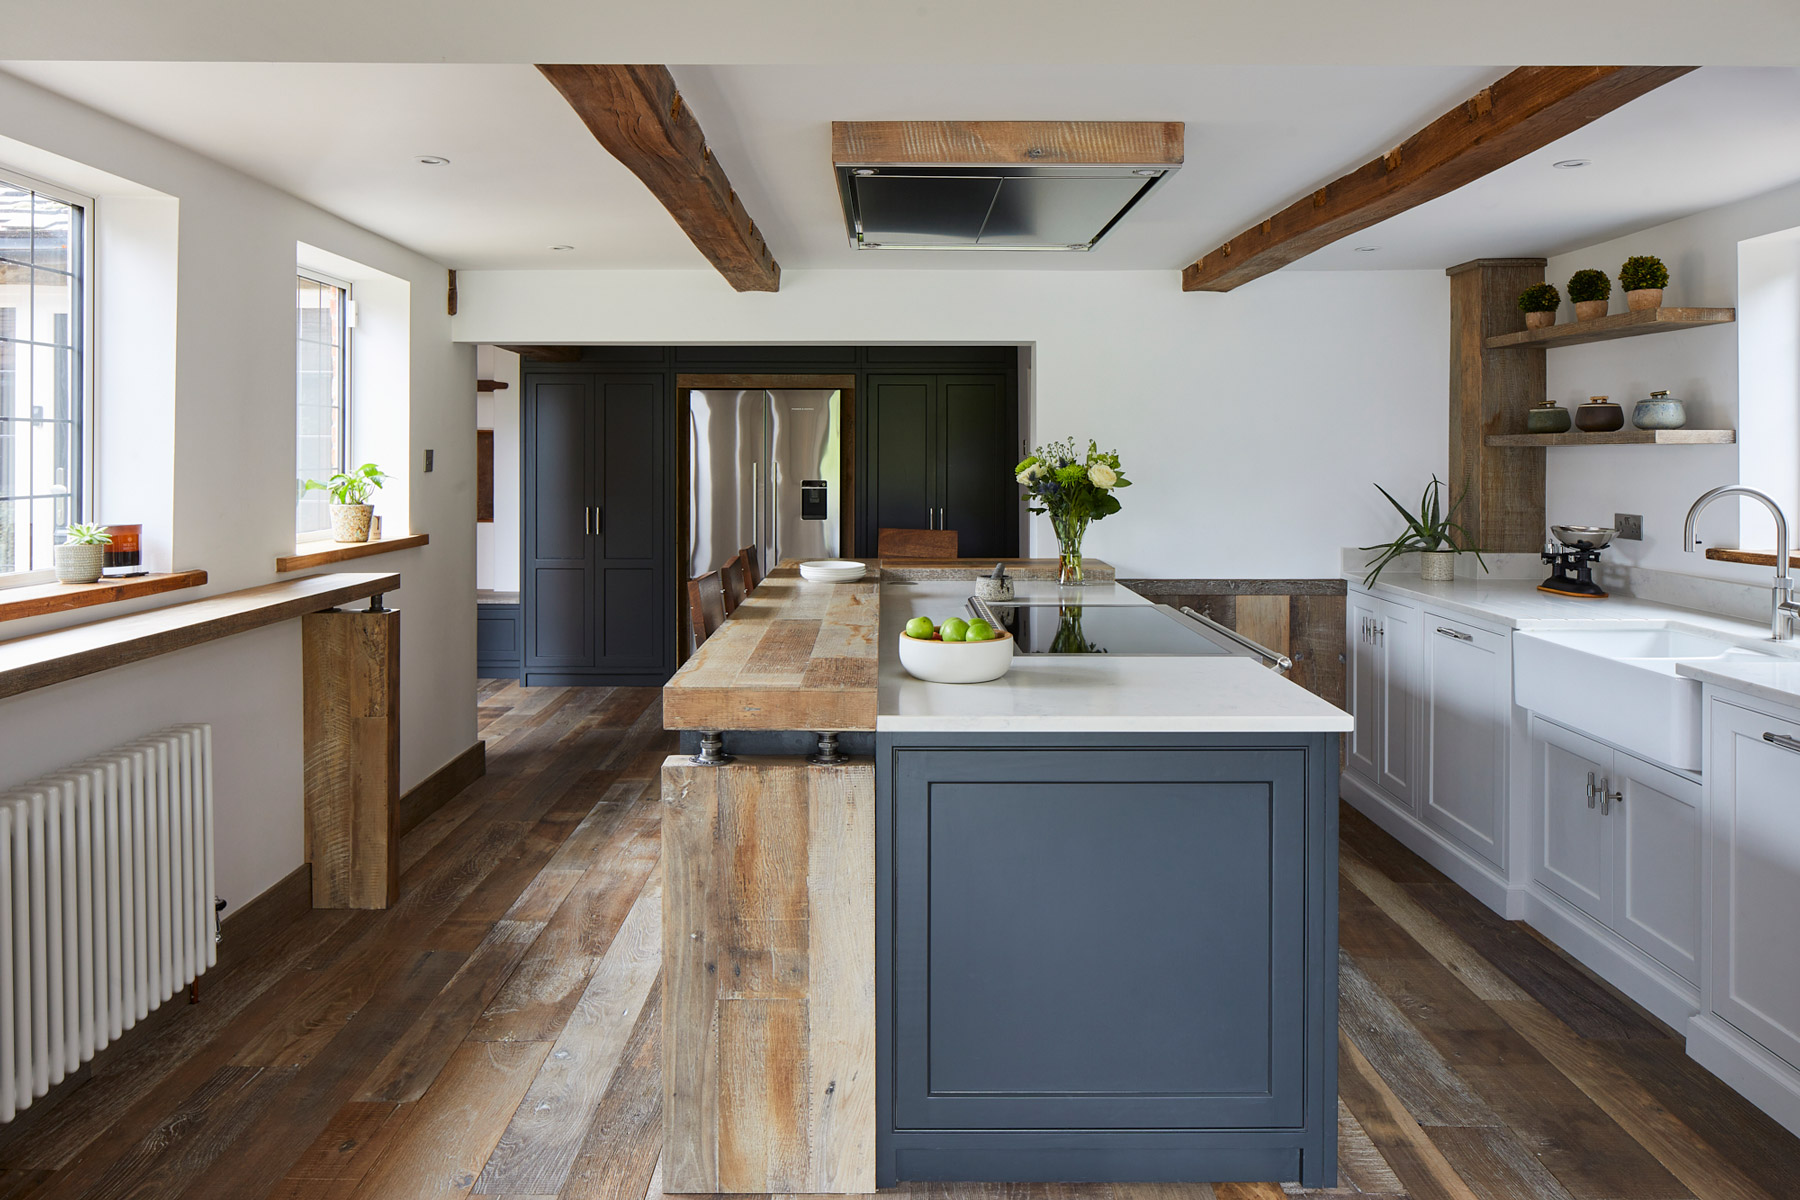 Kitchen cabinets painted in Lamp Black by Little Greene